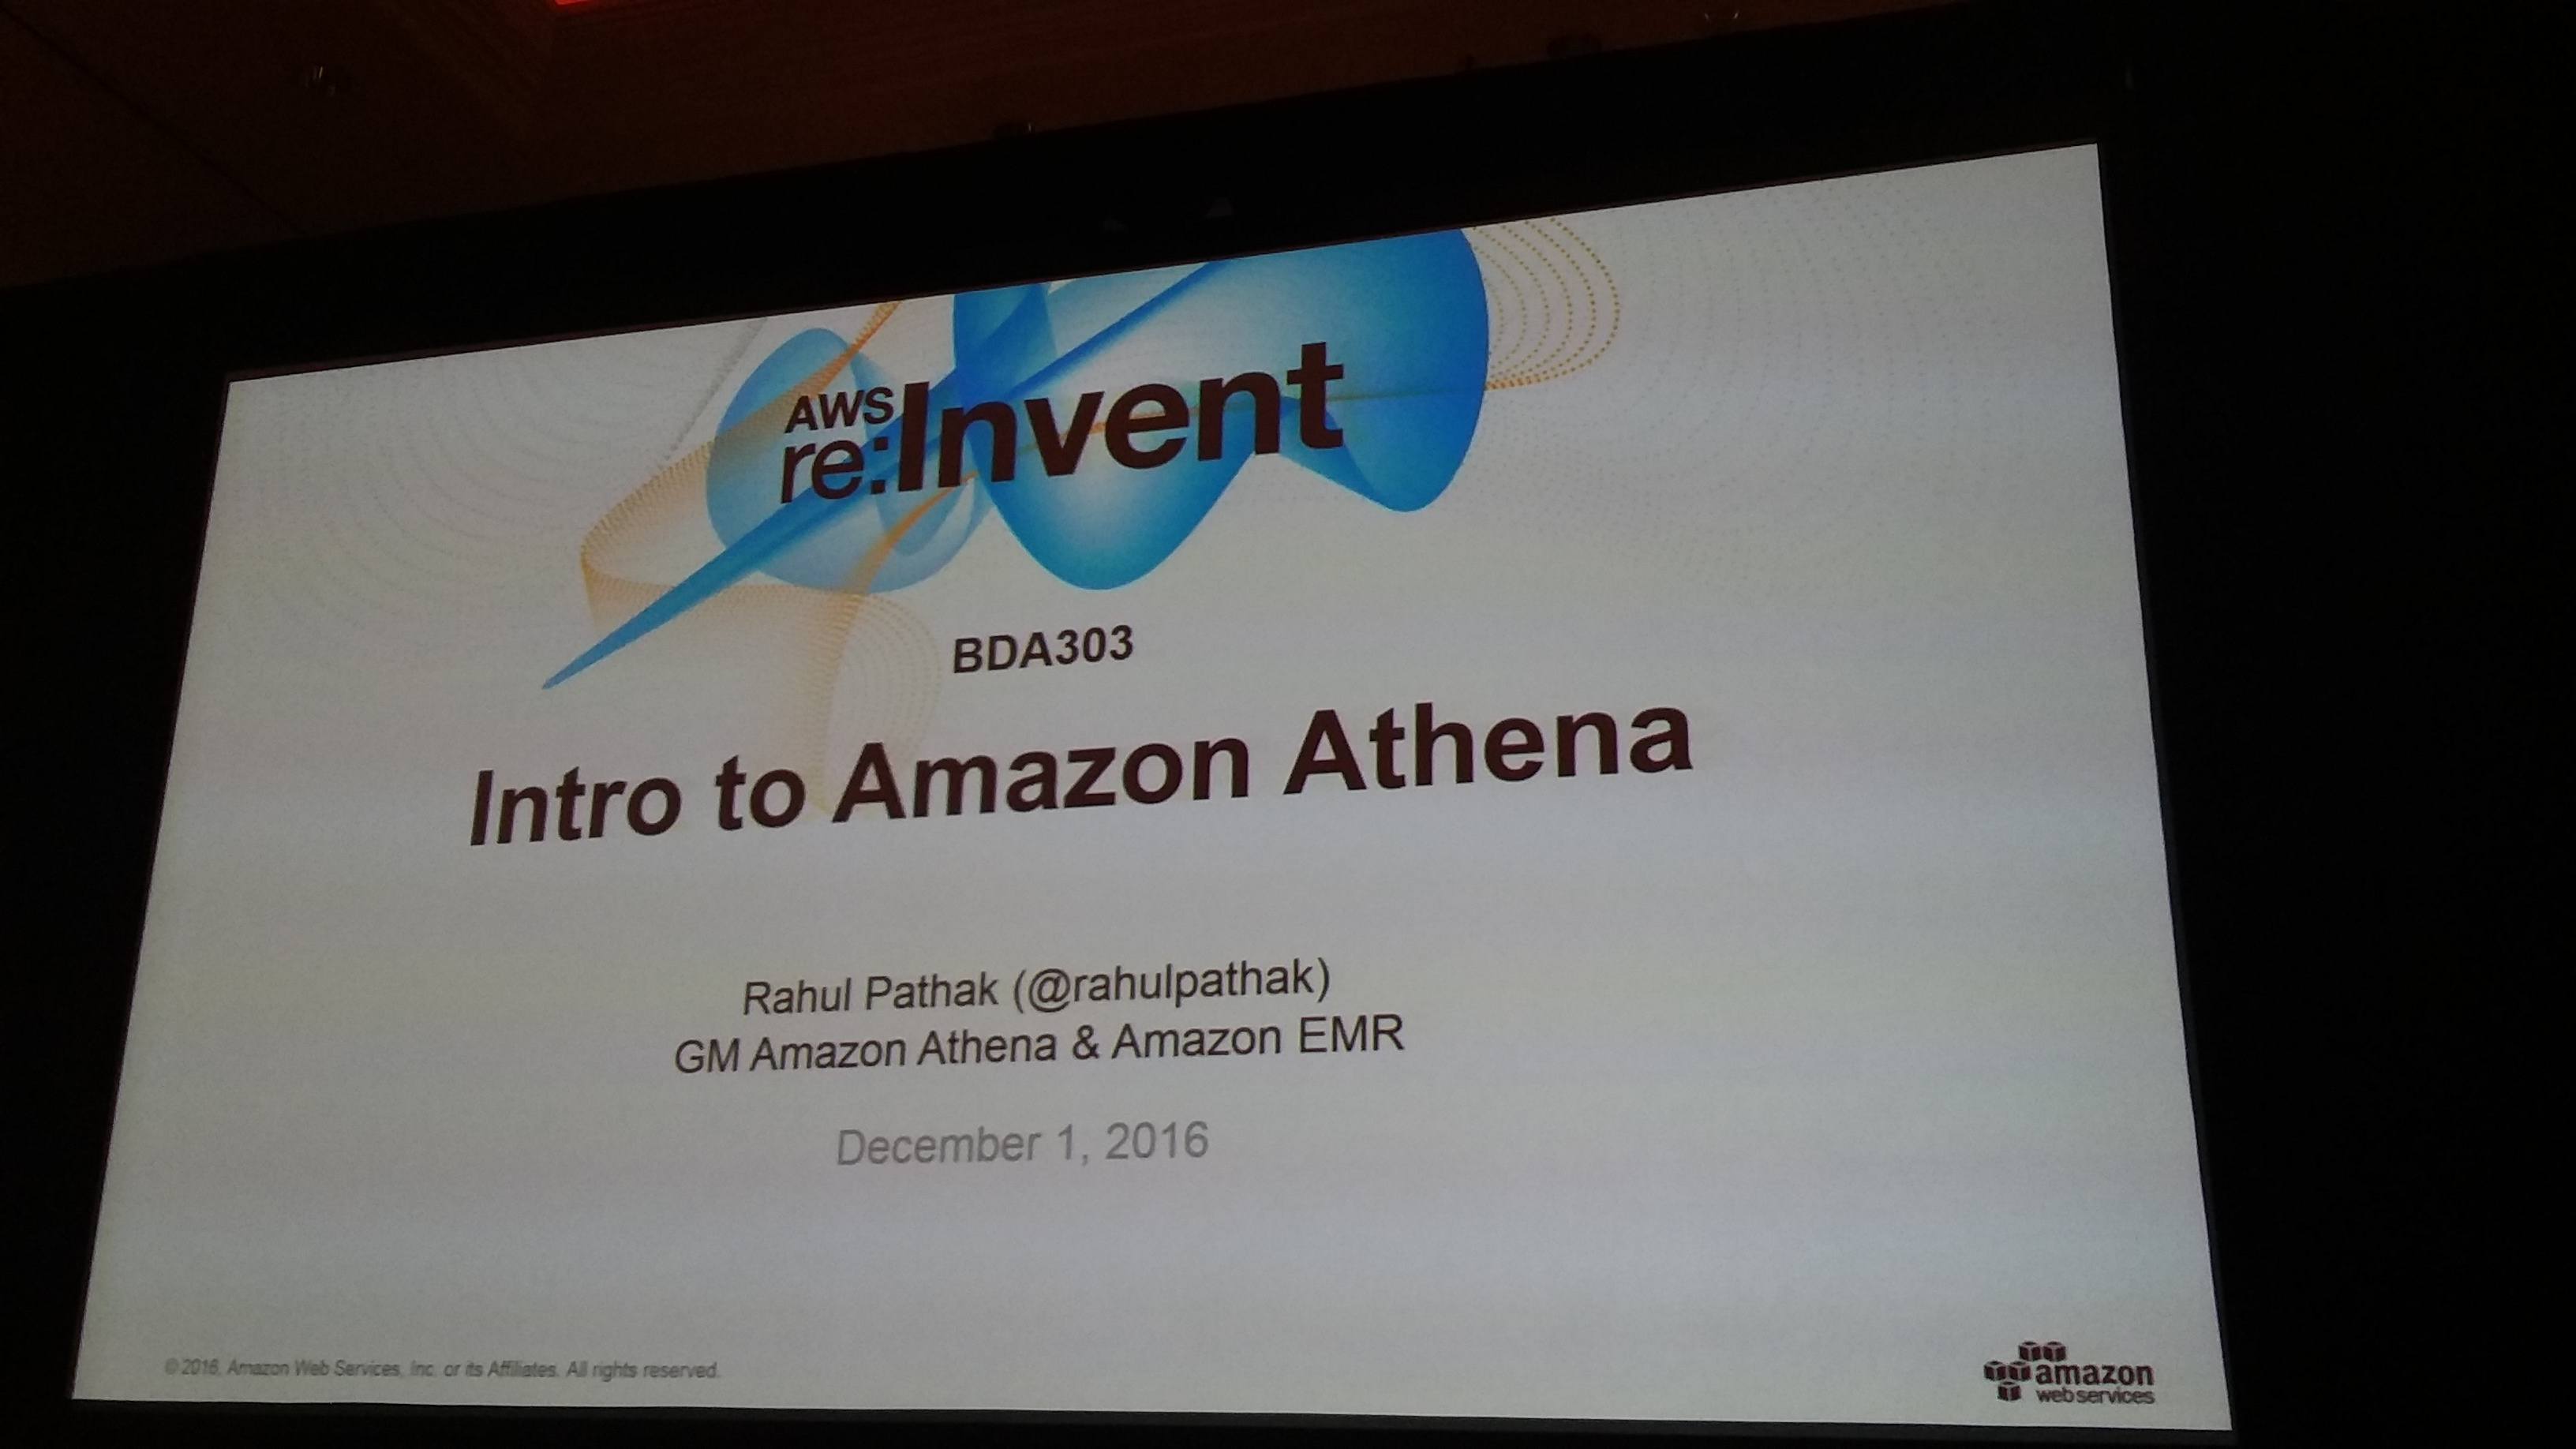 Intro to Amazon Athena (BDA303)